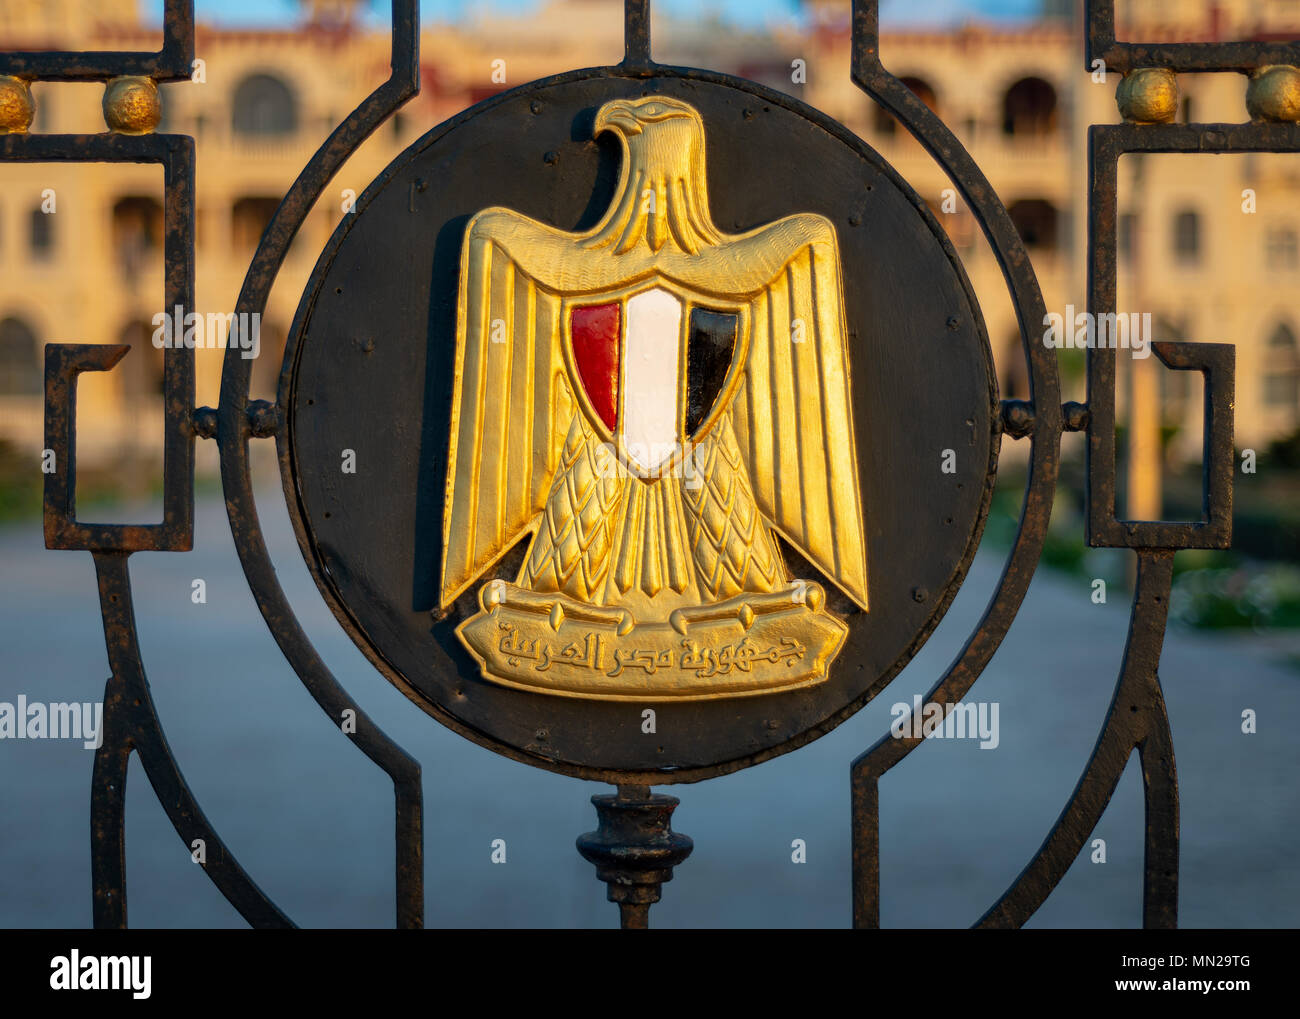 Logo of Egypt on an iron fence revealing Montaza Presidential Palace, consists of Golden Eagle of Saladin holding a scroll with Arabic text (Arab Repu - Stock Image